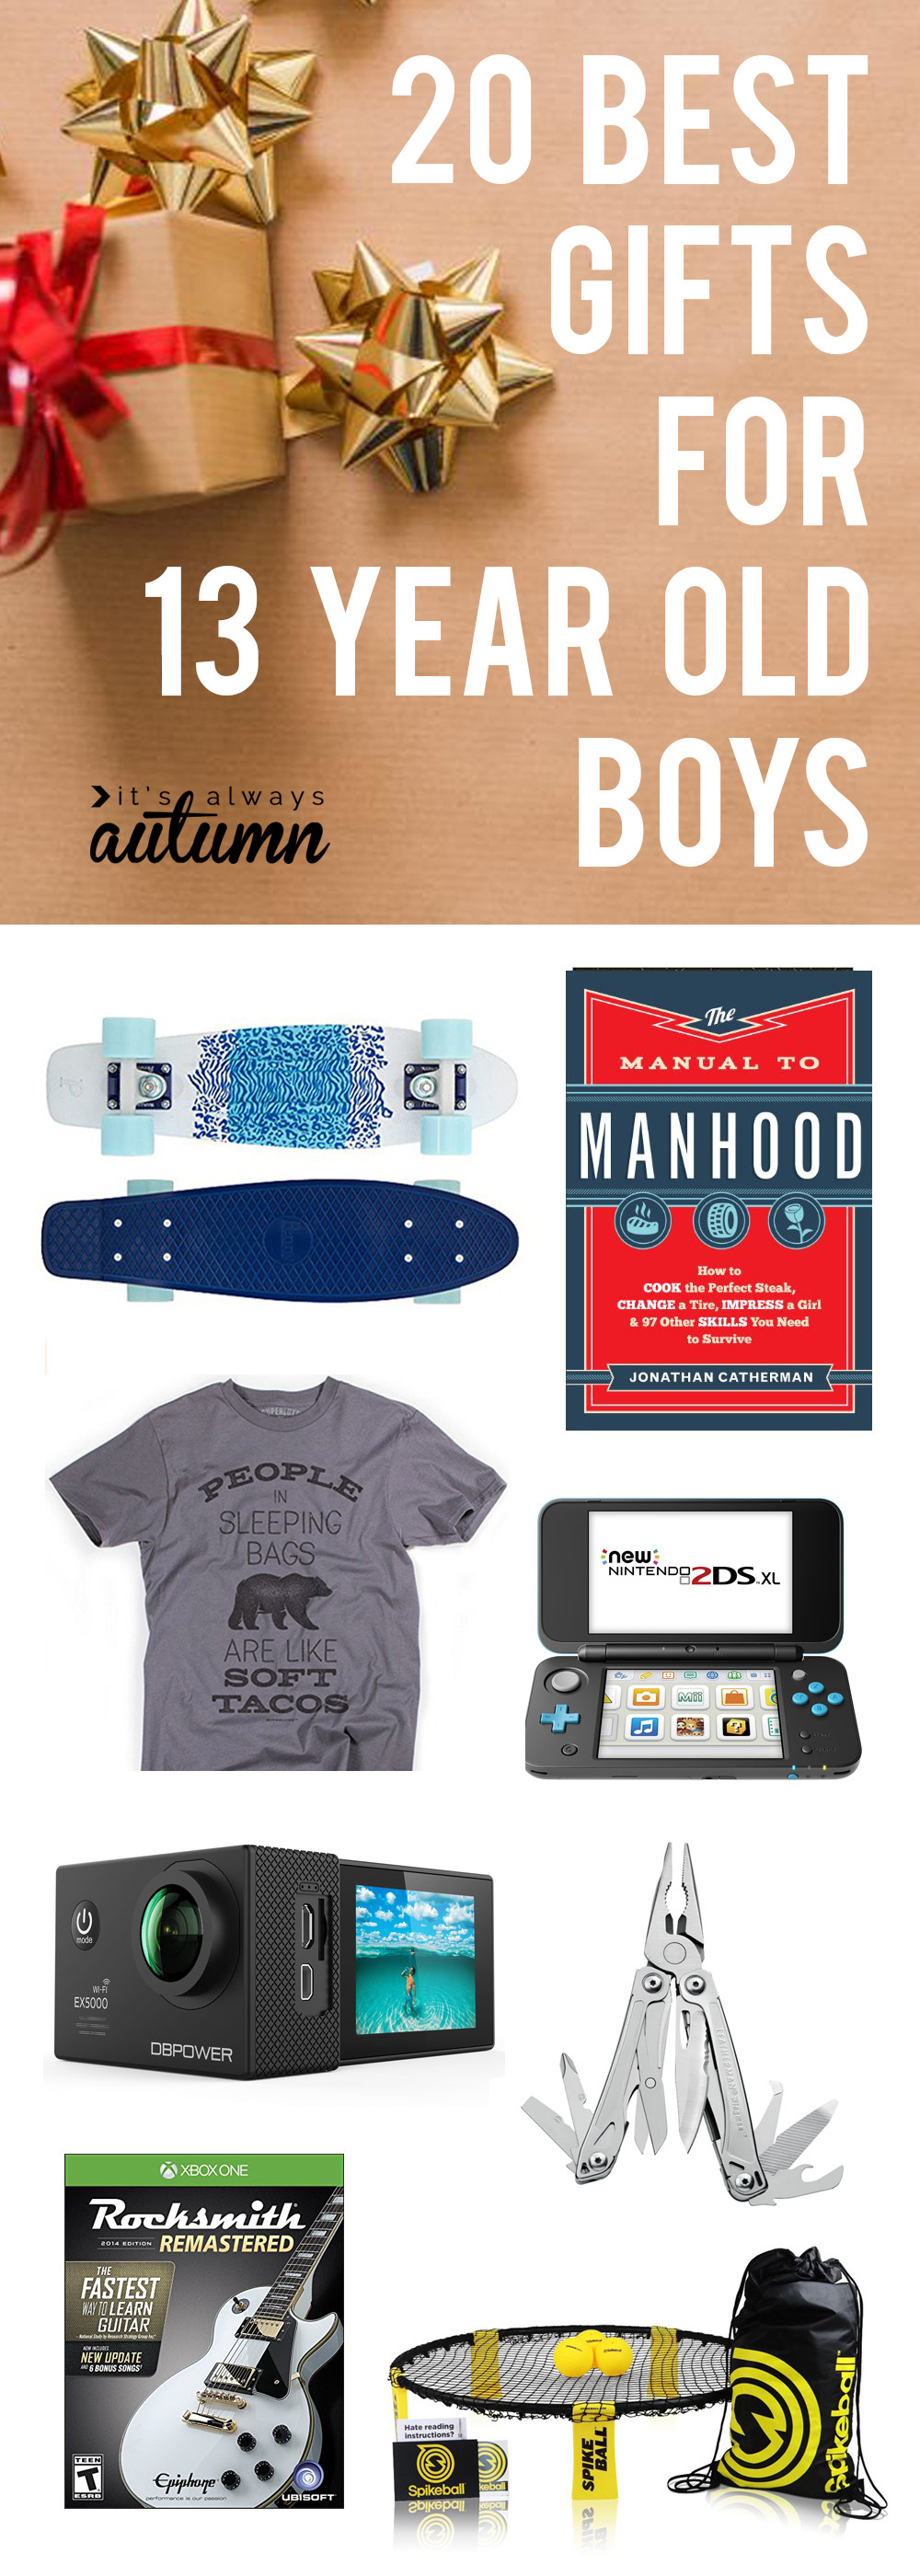 Best ideas about Christmas Gift Ideas 15 Year Old Boy . Save or Pin best Christmas ts for 13 year old boys It s Always Autumn Now.